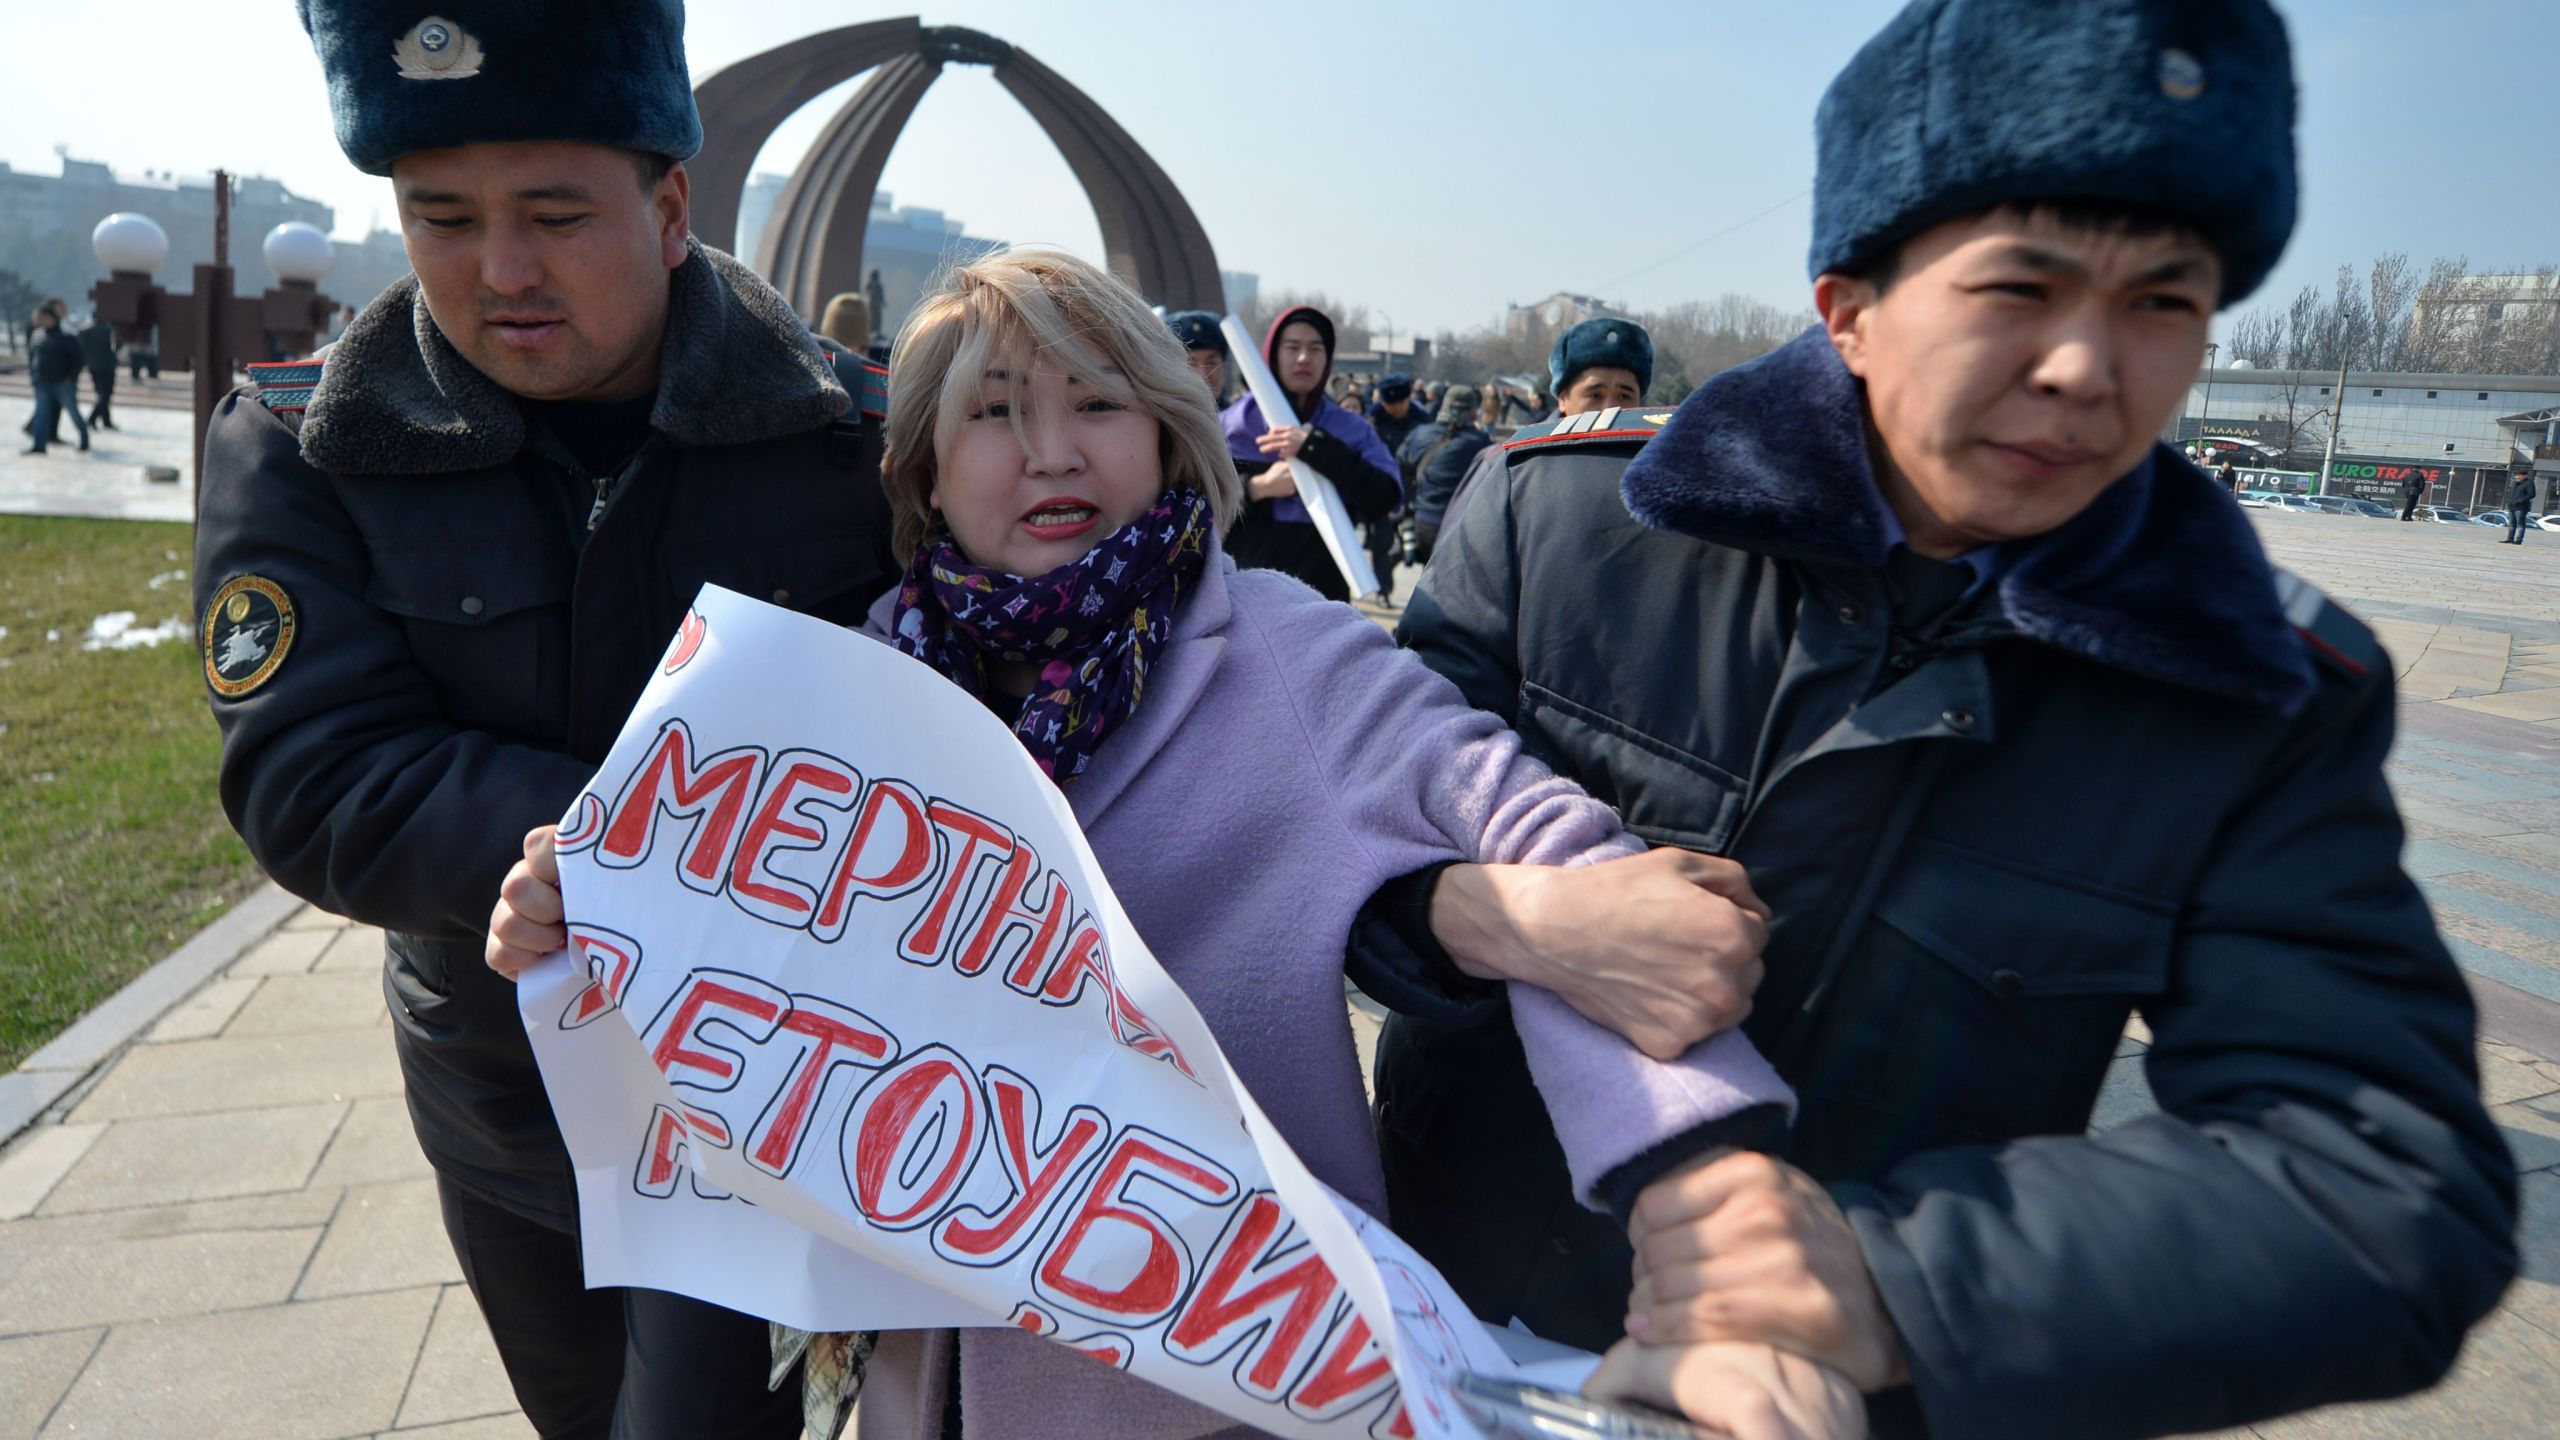 Kyrgyz police arrest a woman protesting against gender-based violence to mark International Women's Day in Bishkek on March 8, 2020. (VYACHESLAV OSELEDKO/AFP via Getty Images)